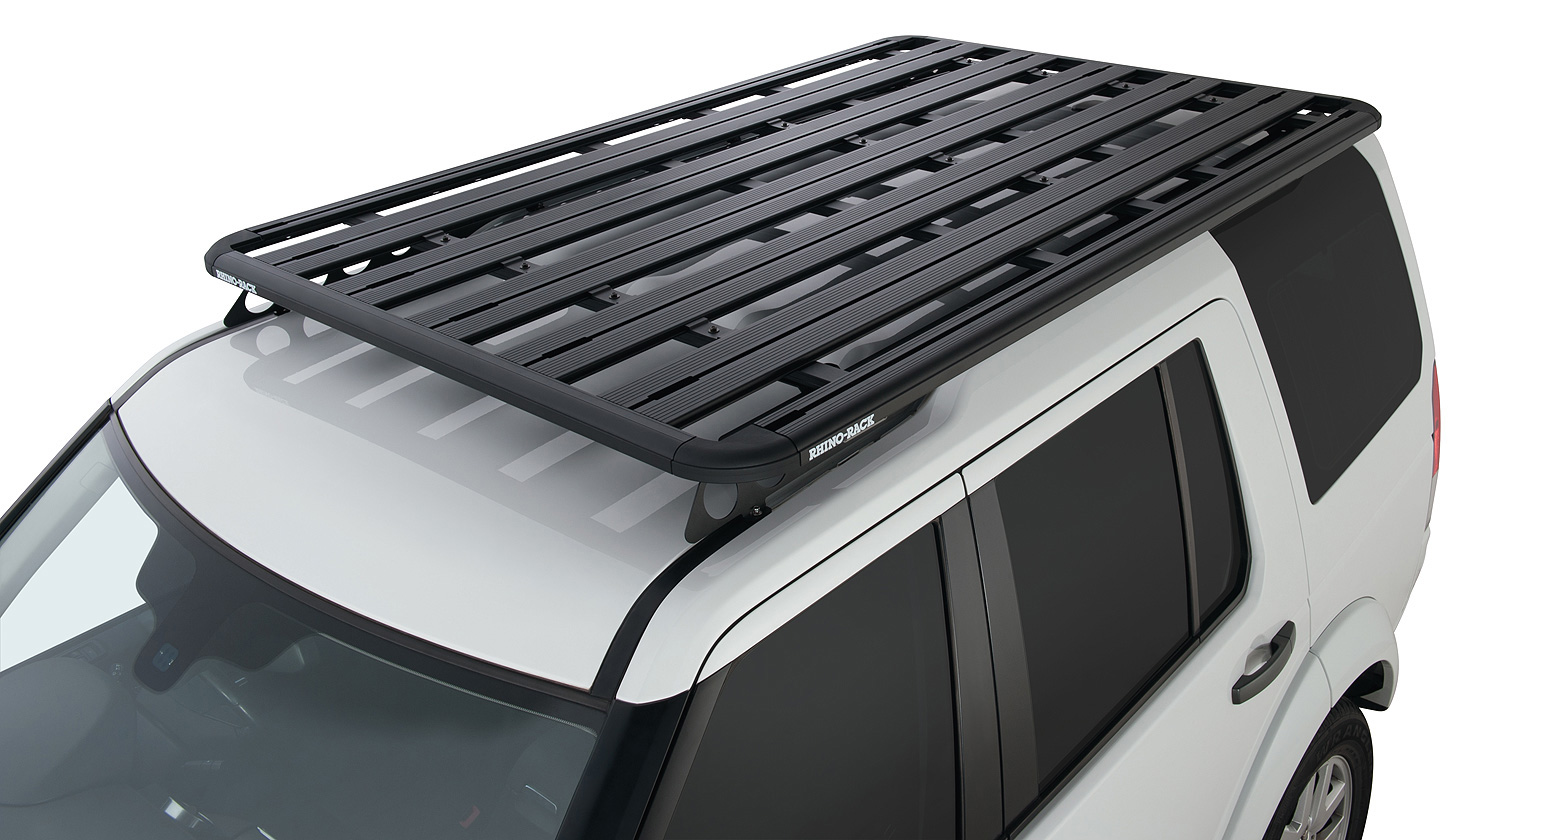 accessories rhino expired parts in wightbay ryde transporter roof rack